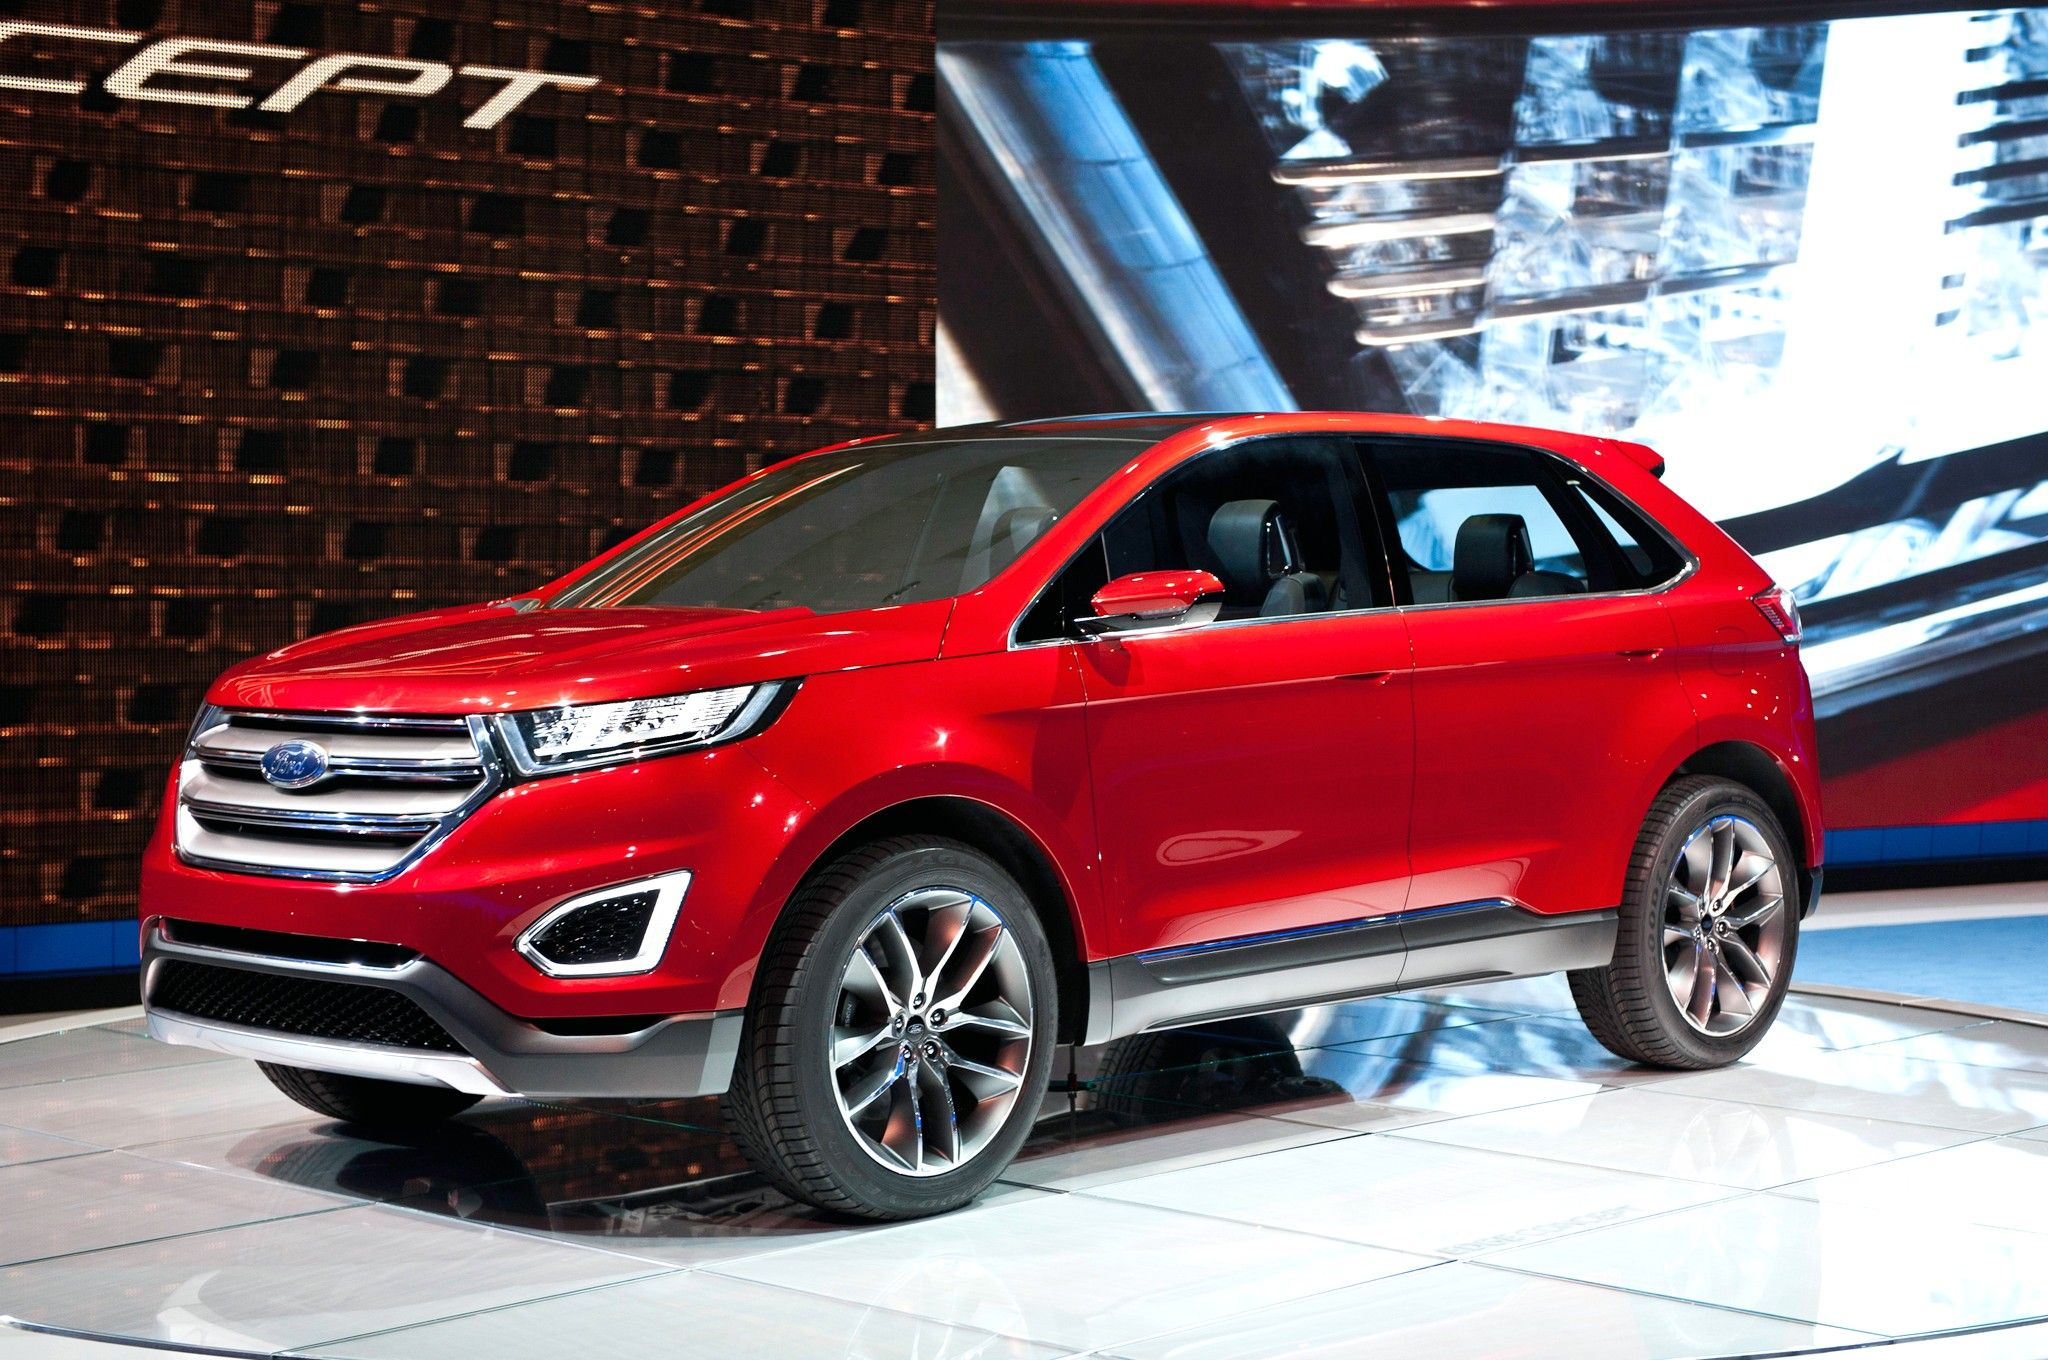 2016 Ford Edge Changes Applied Future Cars Models Ford Edge 2016 Ford Edge New Ford Edge